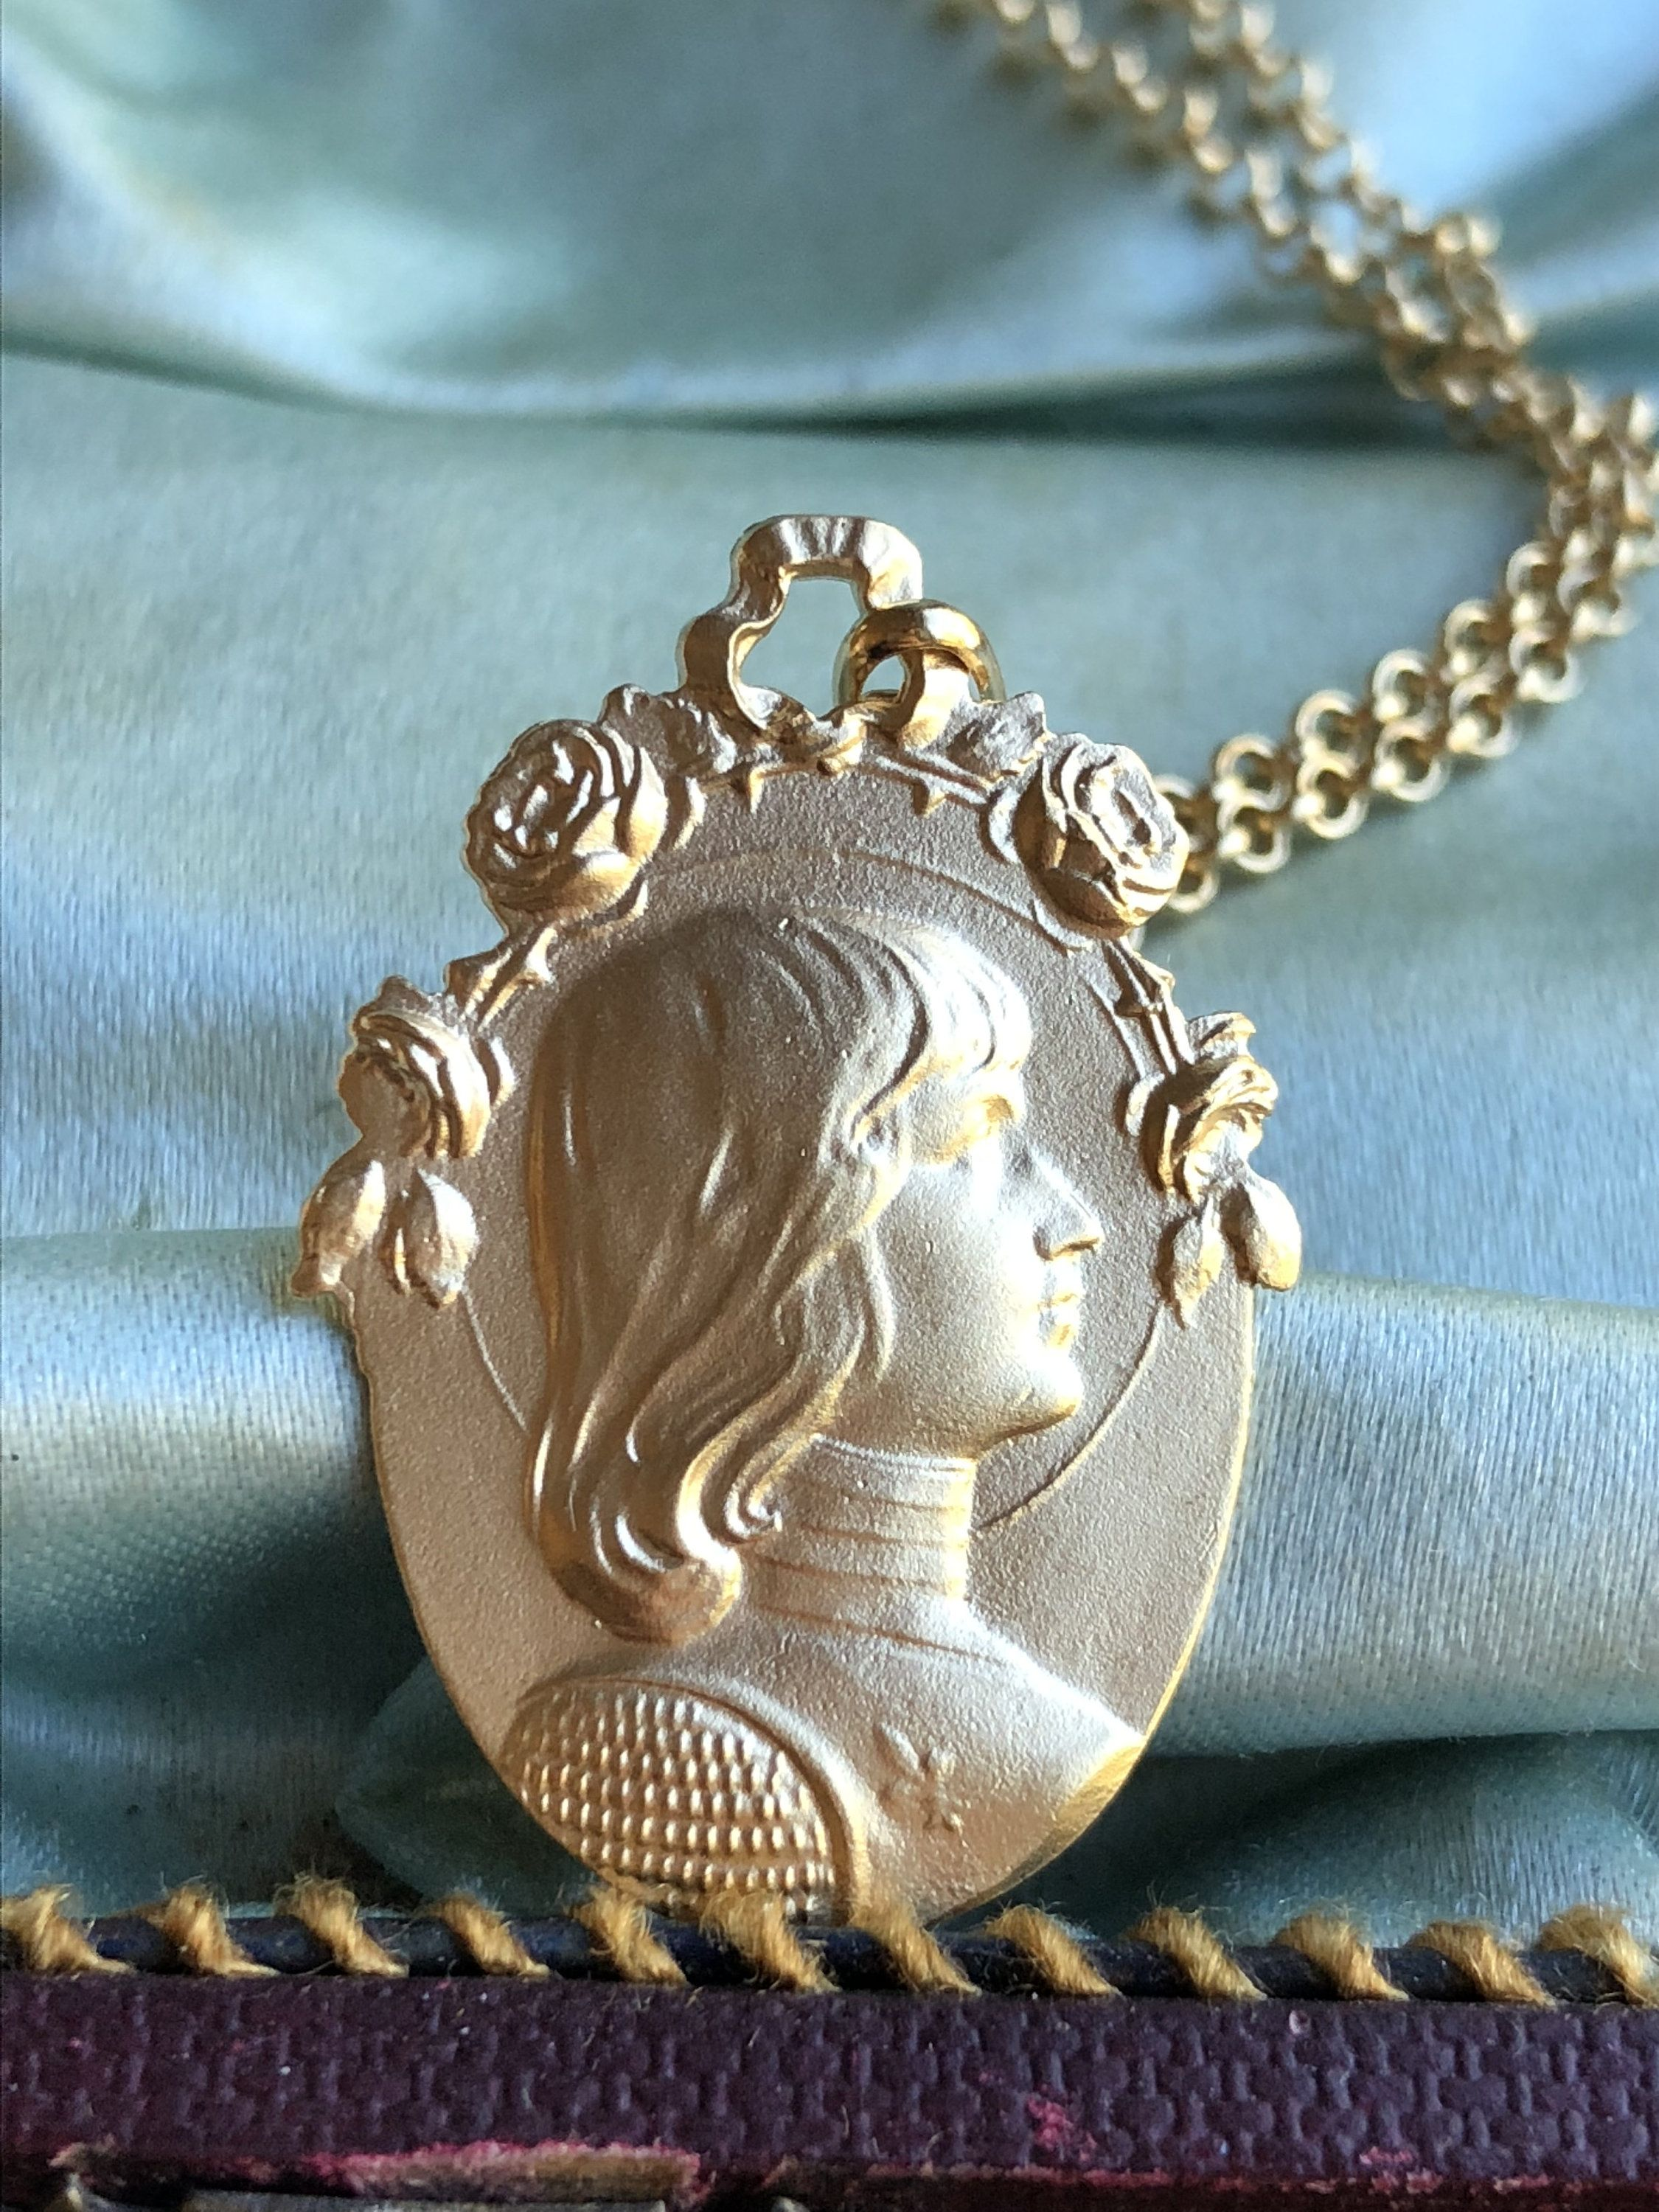 Saint joan of arc medal necklace 18k gold plated silver french art saint joan of arc medal necklace 18k gold plated silver french art nouveau religious catholic jewelry aloadofball Gallery